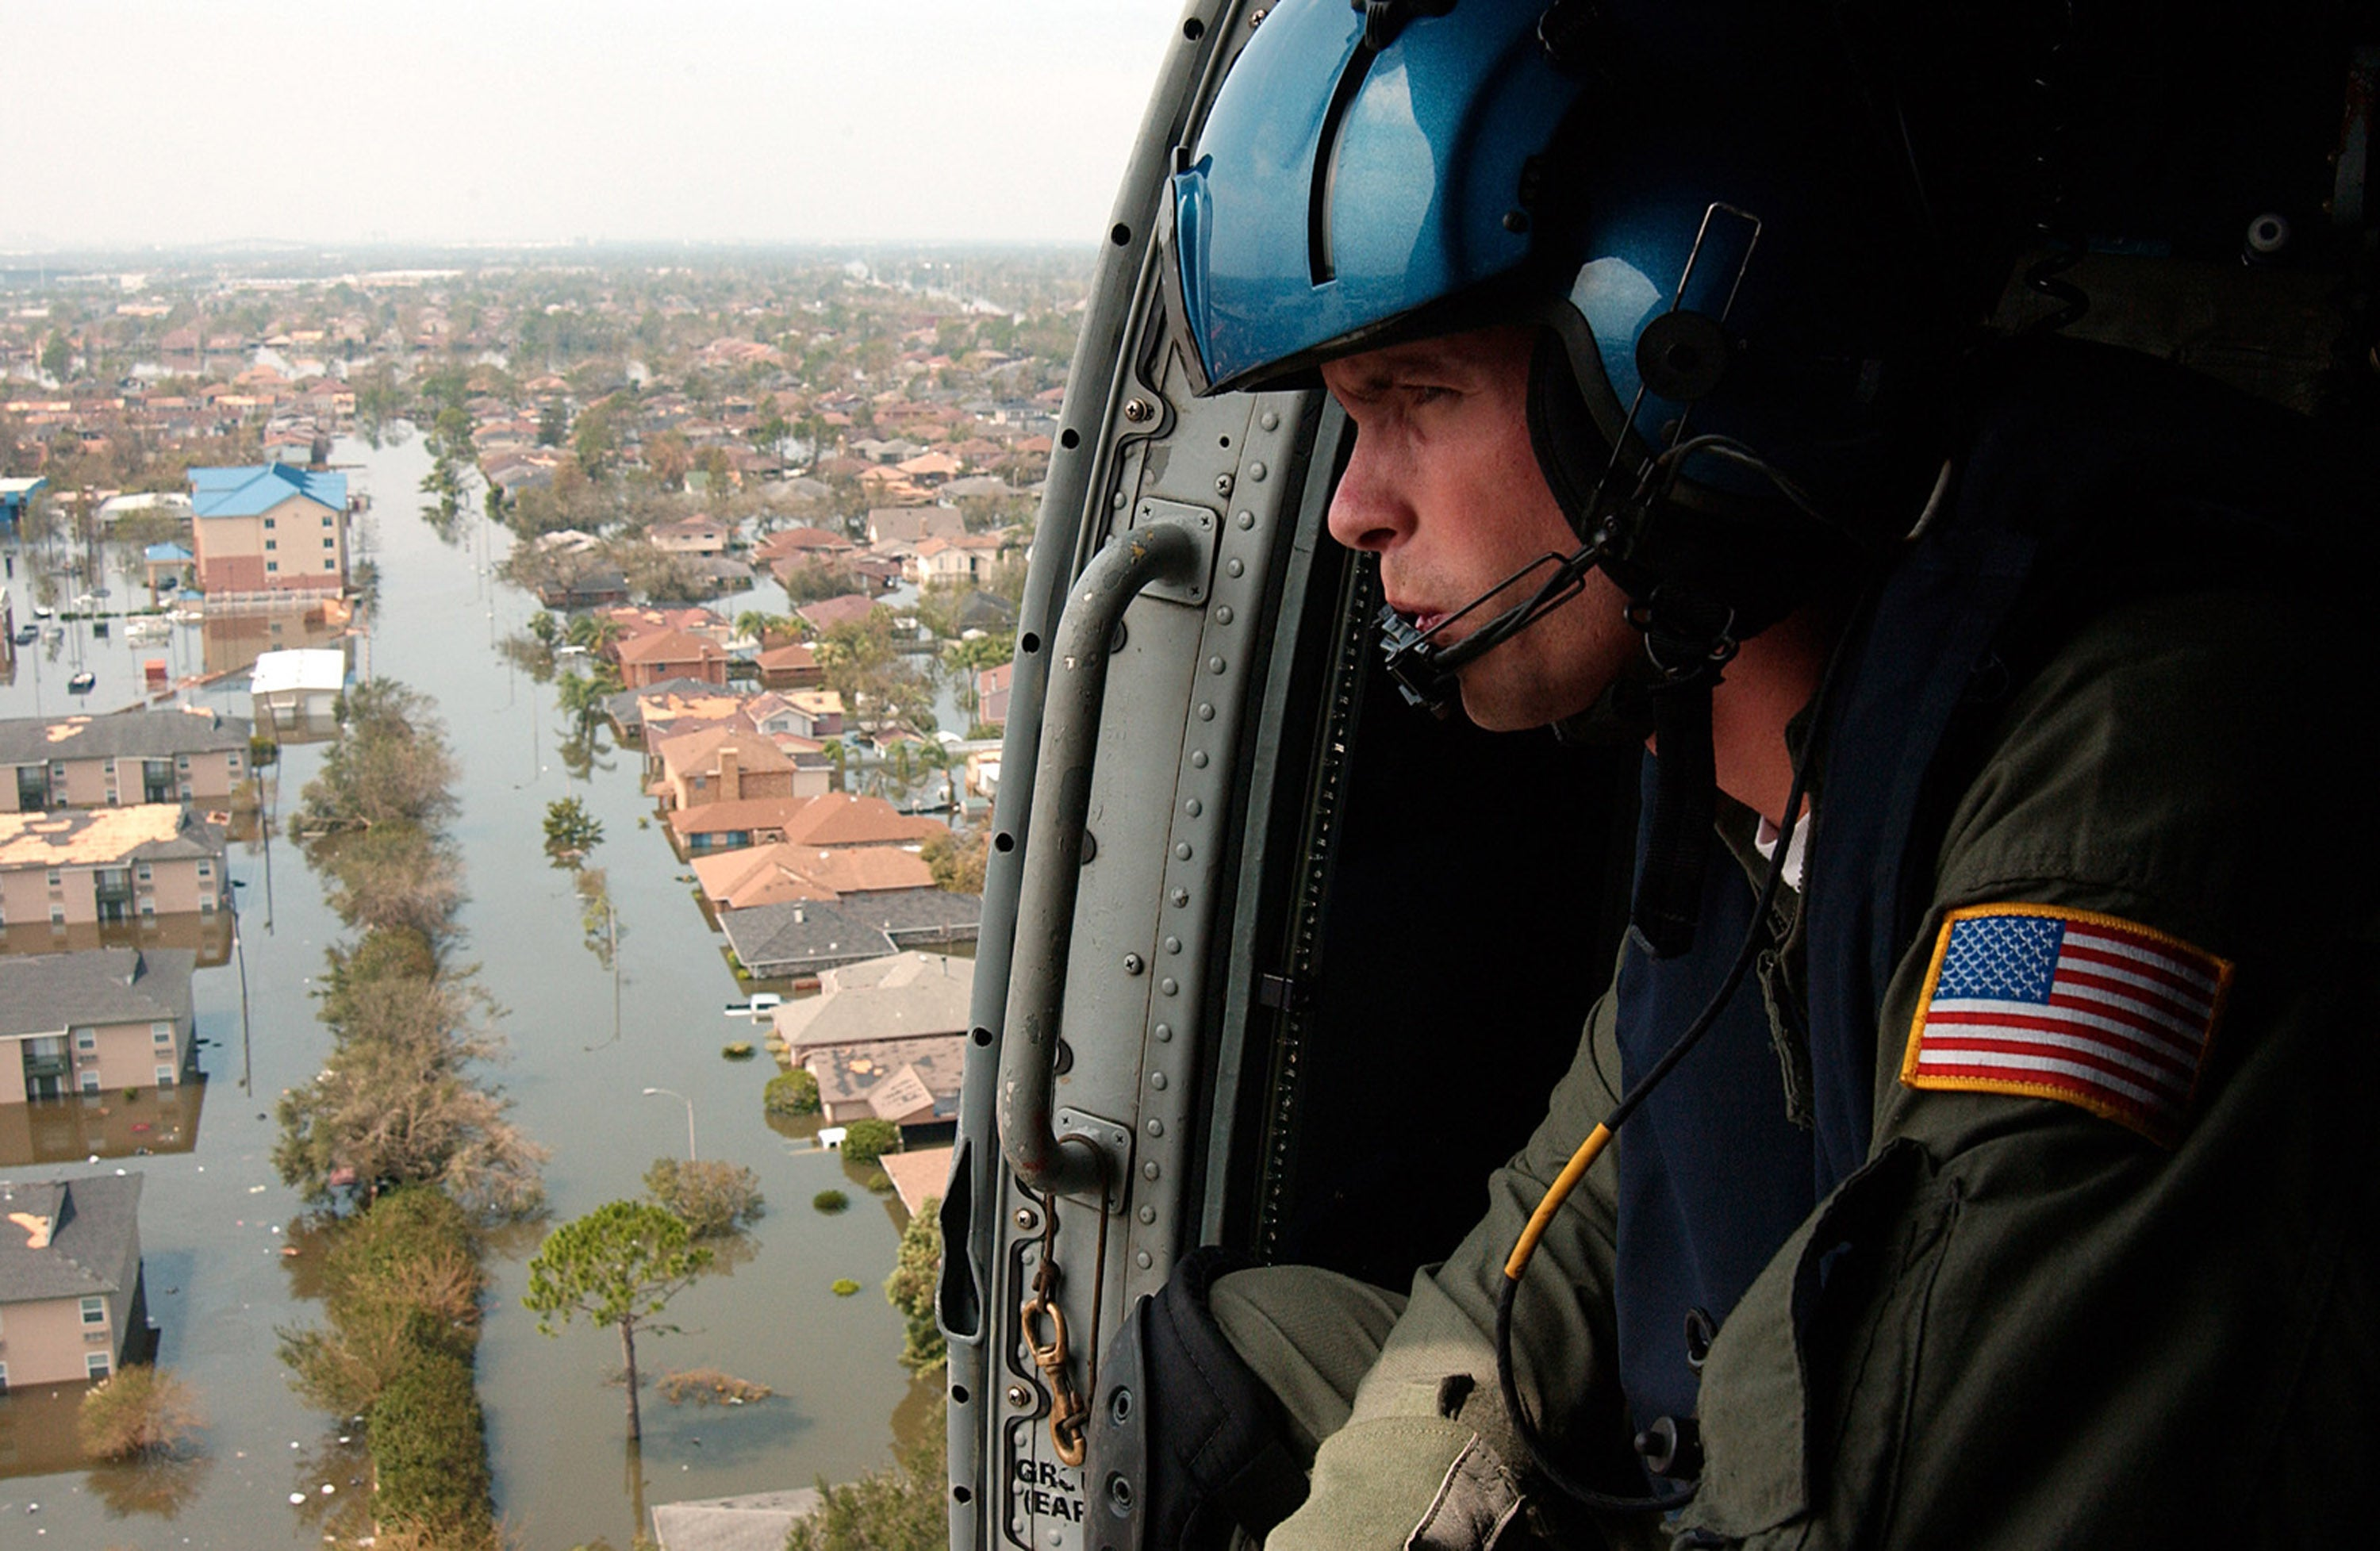 in the wake of hurricane katrina Hurricane katrina (august 2005) became a large and extremely powerful hurricane that caused enormous destruction and significant loss of life it is the costliest hurricane to ever hit the united states, surpassing the record previously held by hurricane andrew from 1992 in addition, katrina is one.